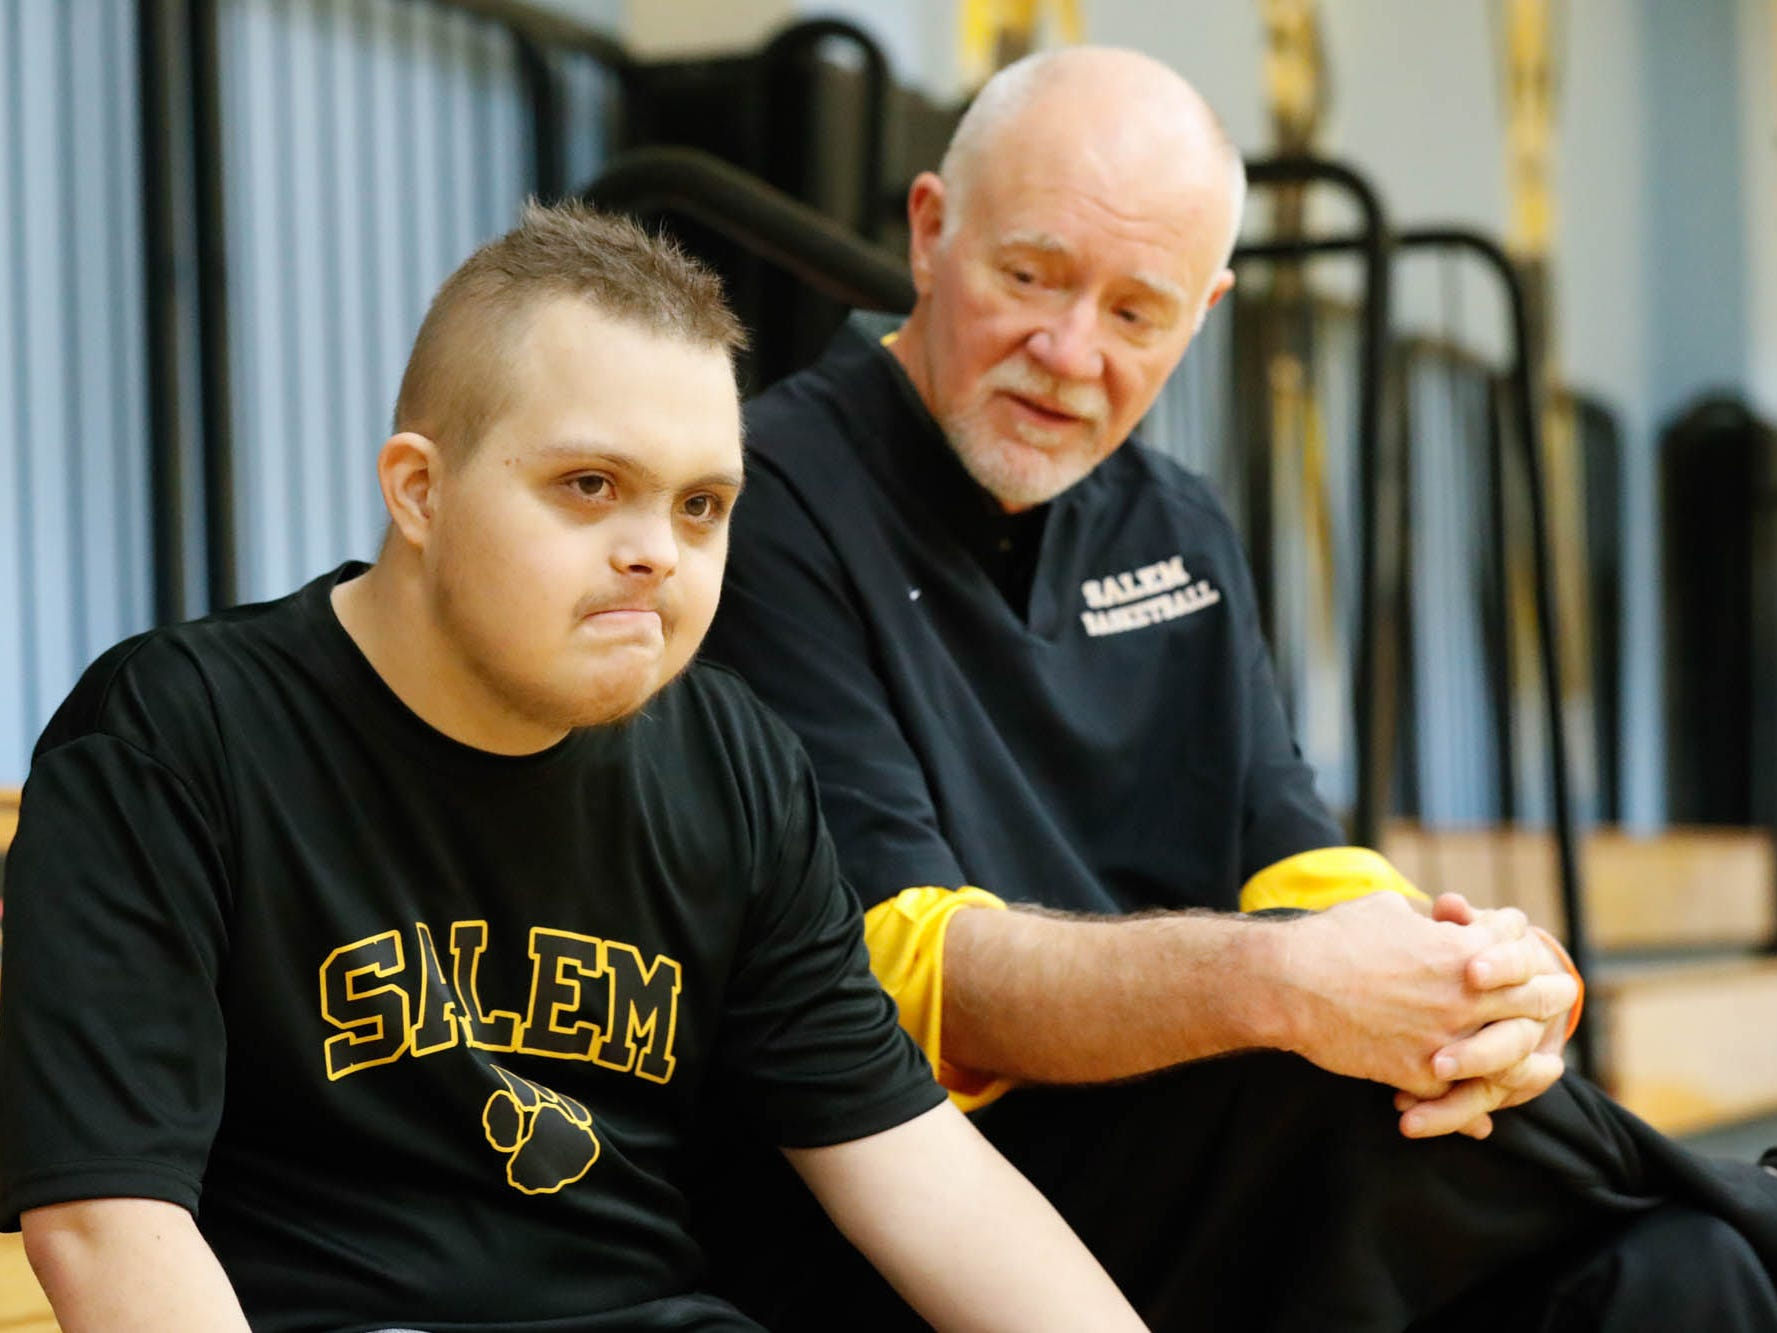 Jalen Pigg and his stepdad, Salem High School Boys Basketball Coach Mike Brown, rest for a moment on the bleachers during a team practice at Salem High School in Salem, Indiana, on  Jan. 23, 2019. Jalen, who was born with Down Syndrome, is now battling a form of leukemia.